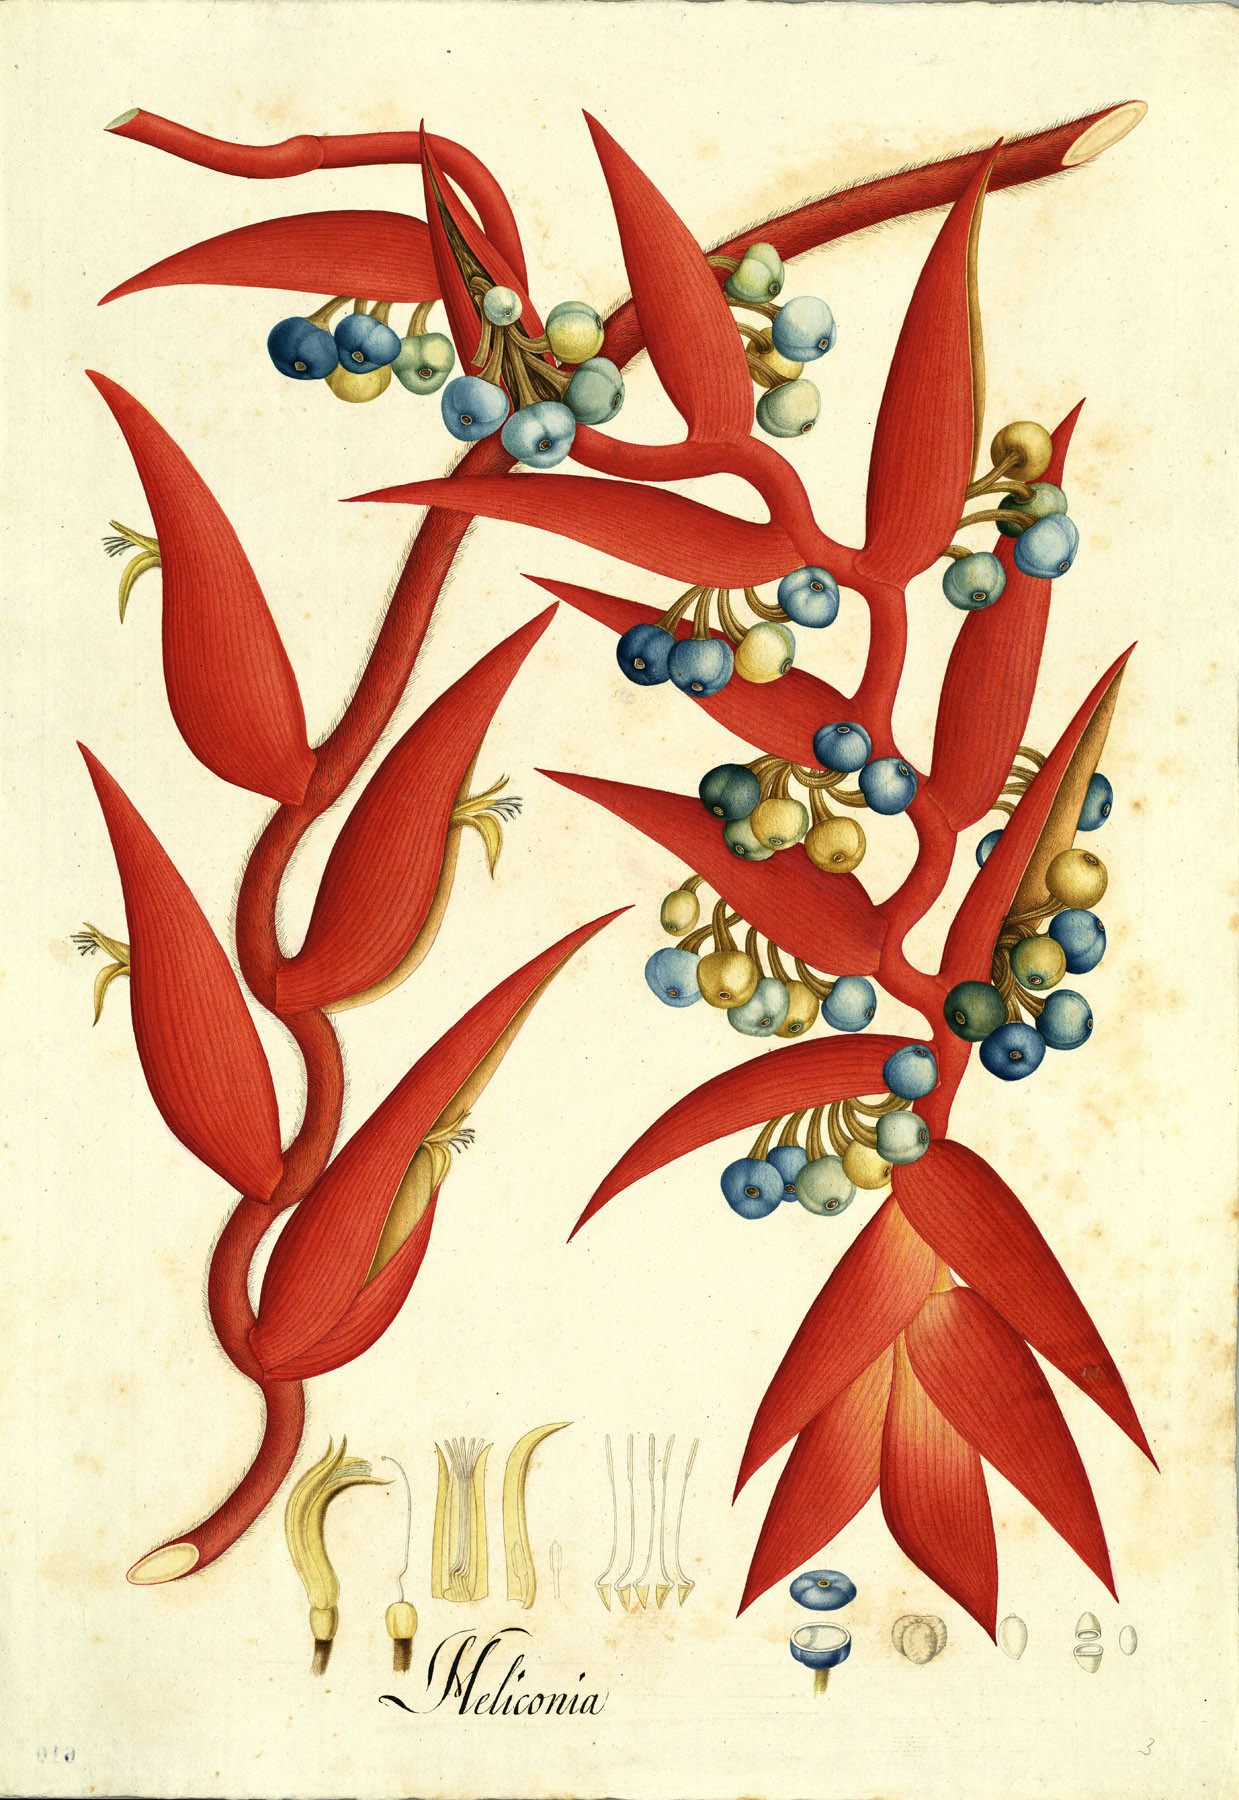 Heliconia drawing from the Royal Botanical Expedition of José Celestino Mutis